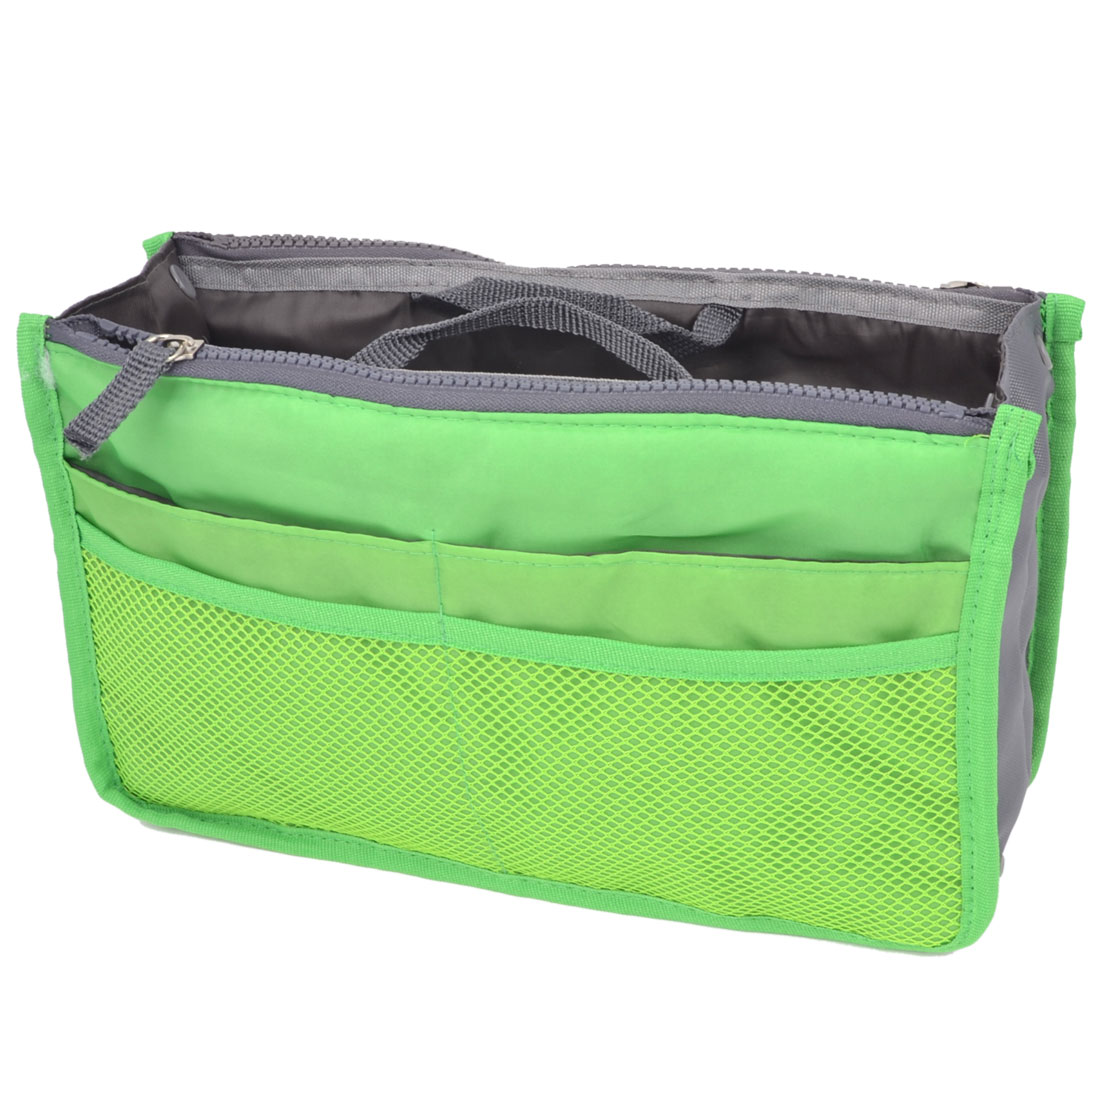 Travel Portable Netty Design Inner Zipper Storage Bag Organizer Green